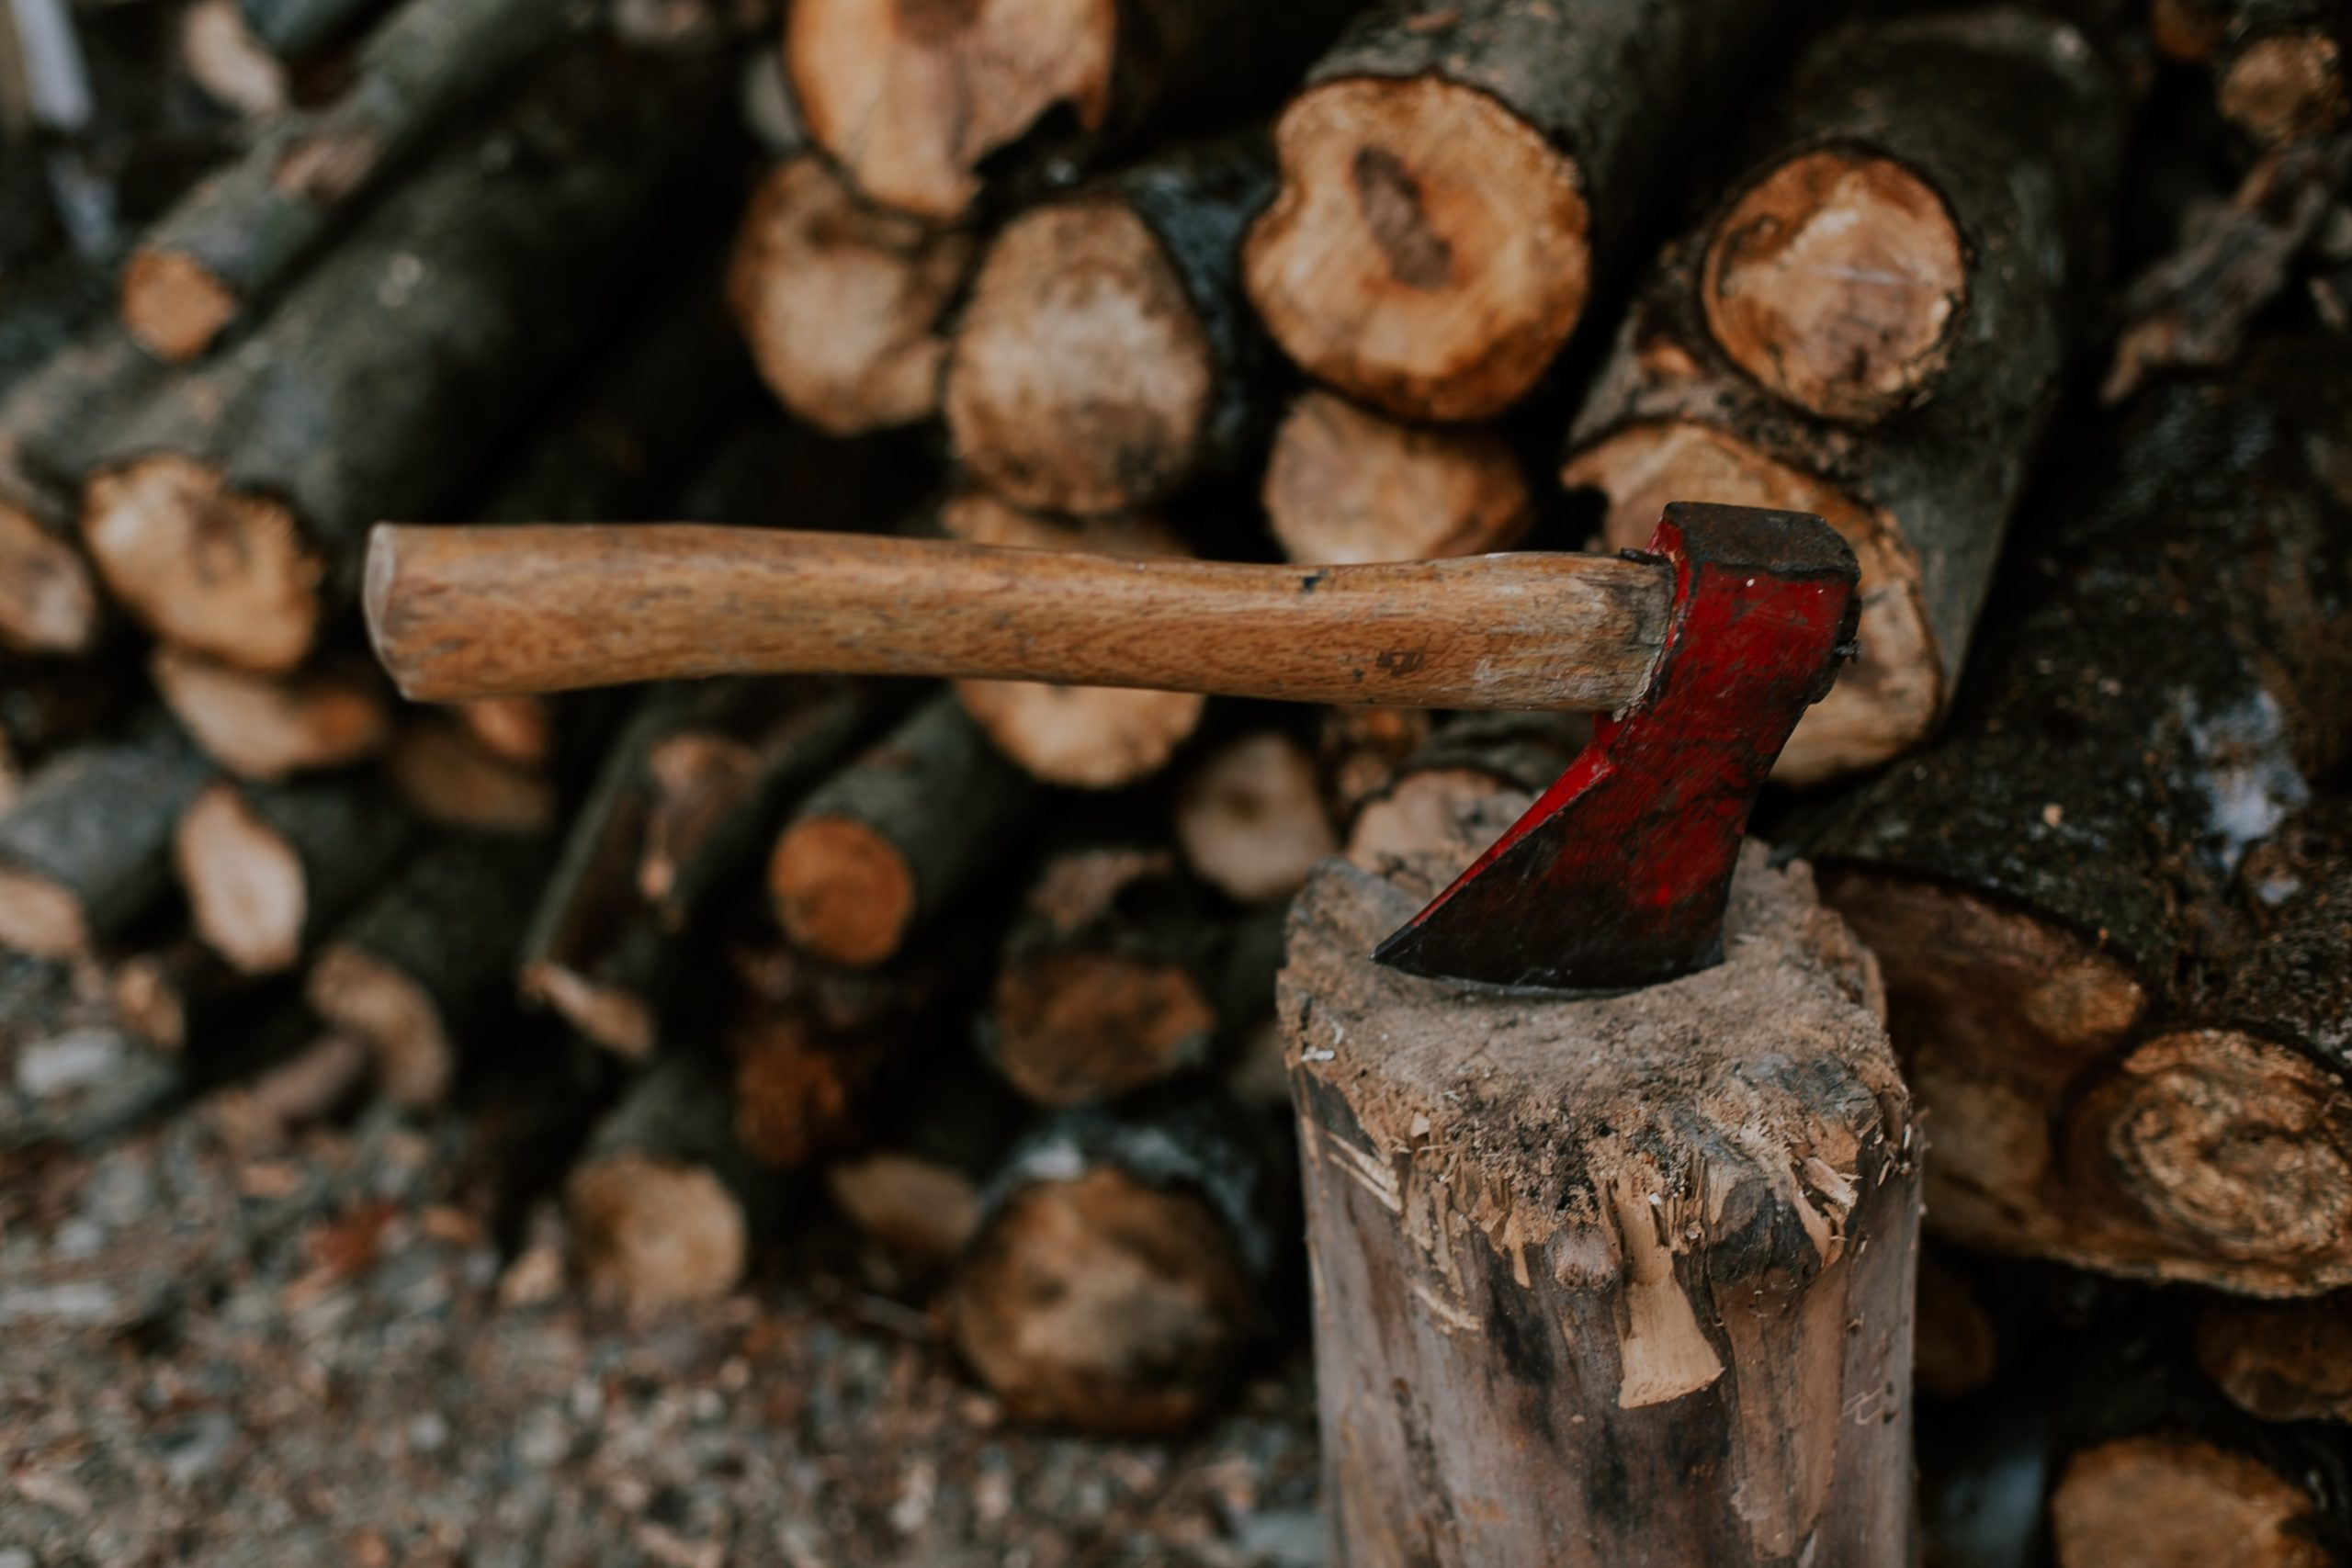 An ax stuck in a log in front of a pile of wood.